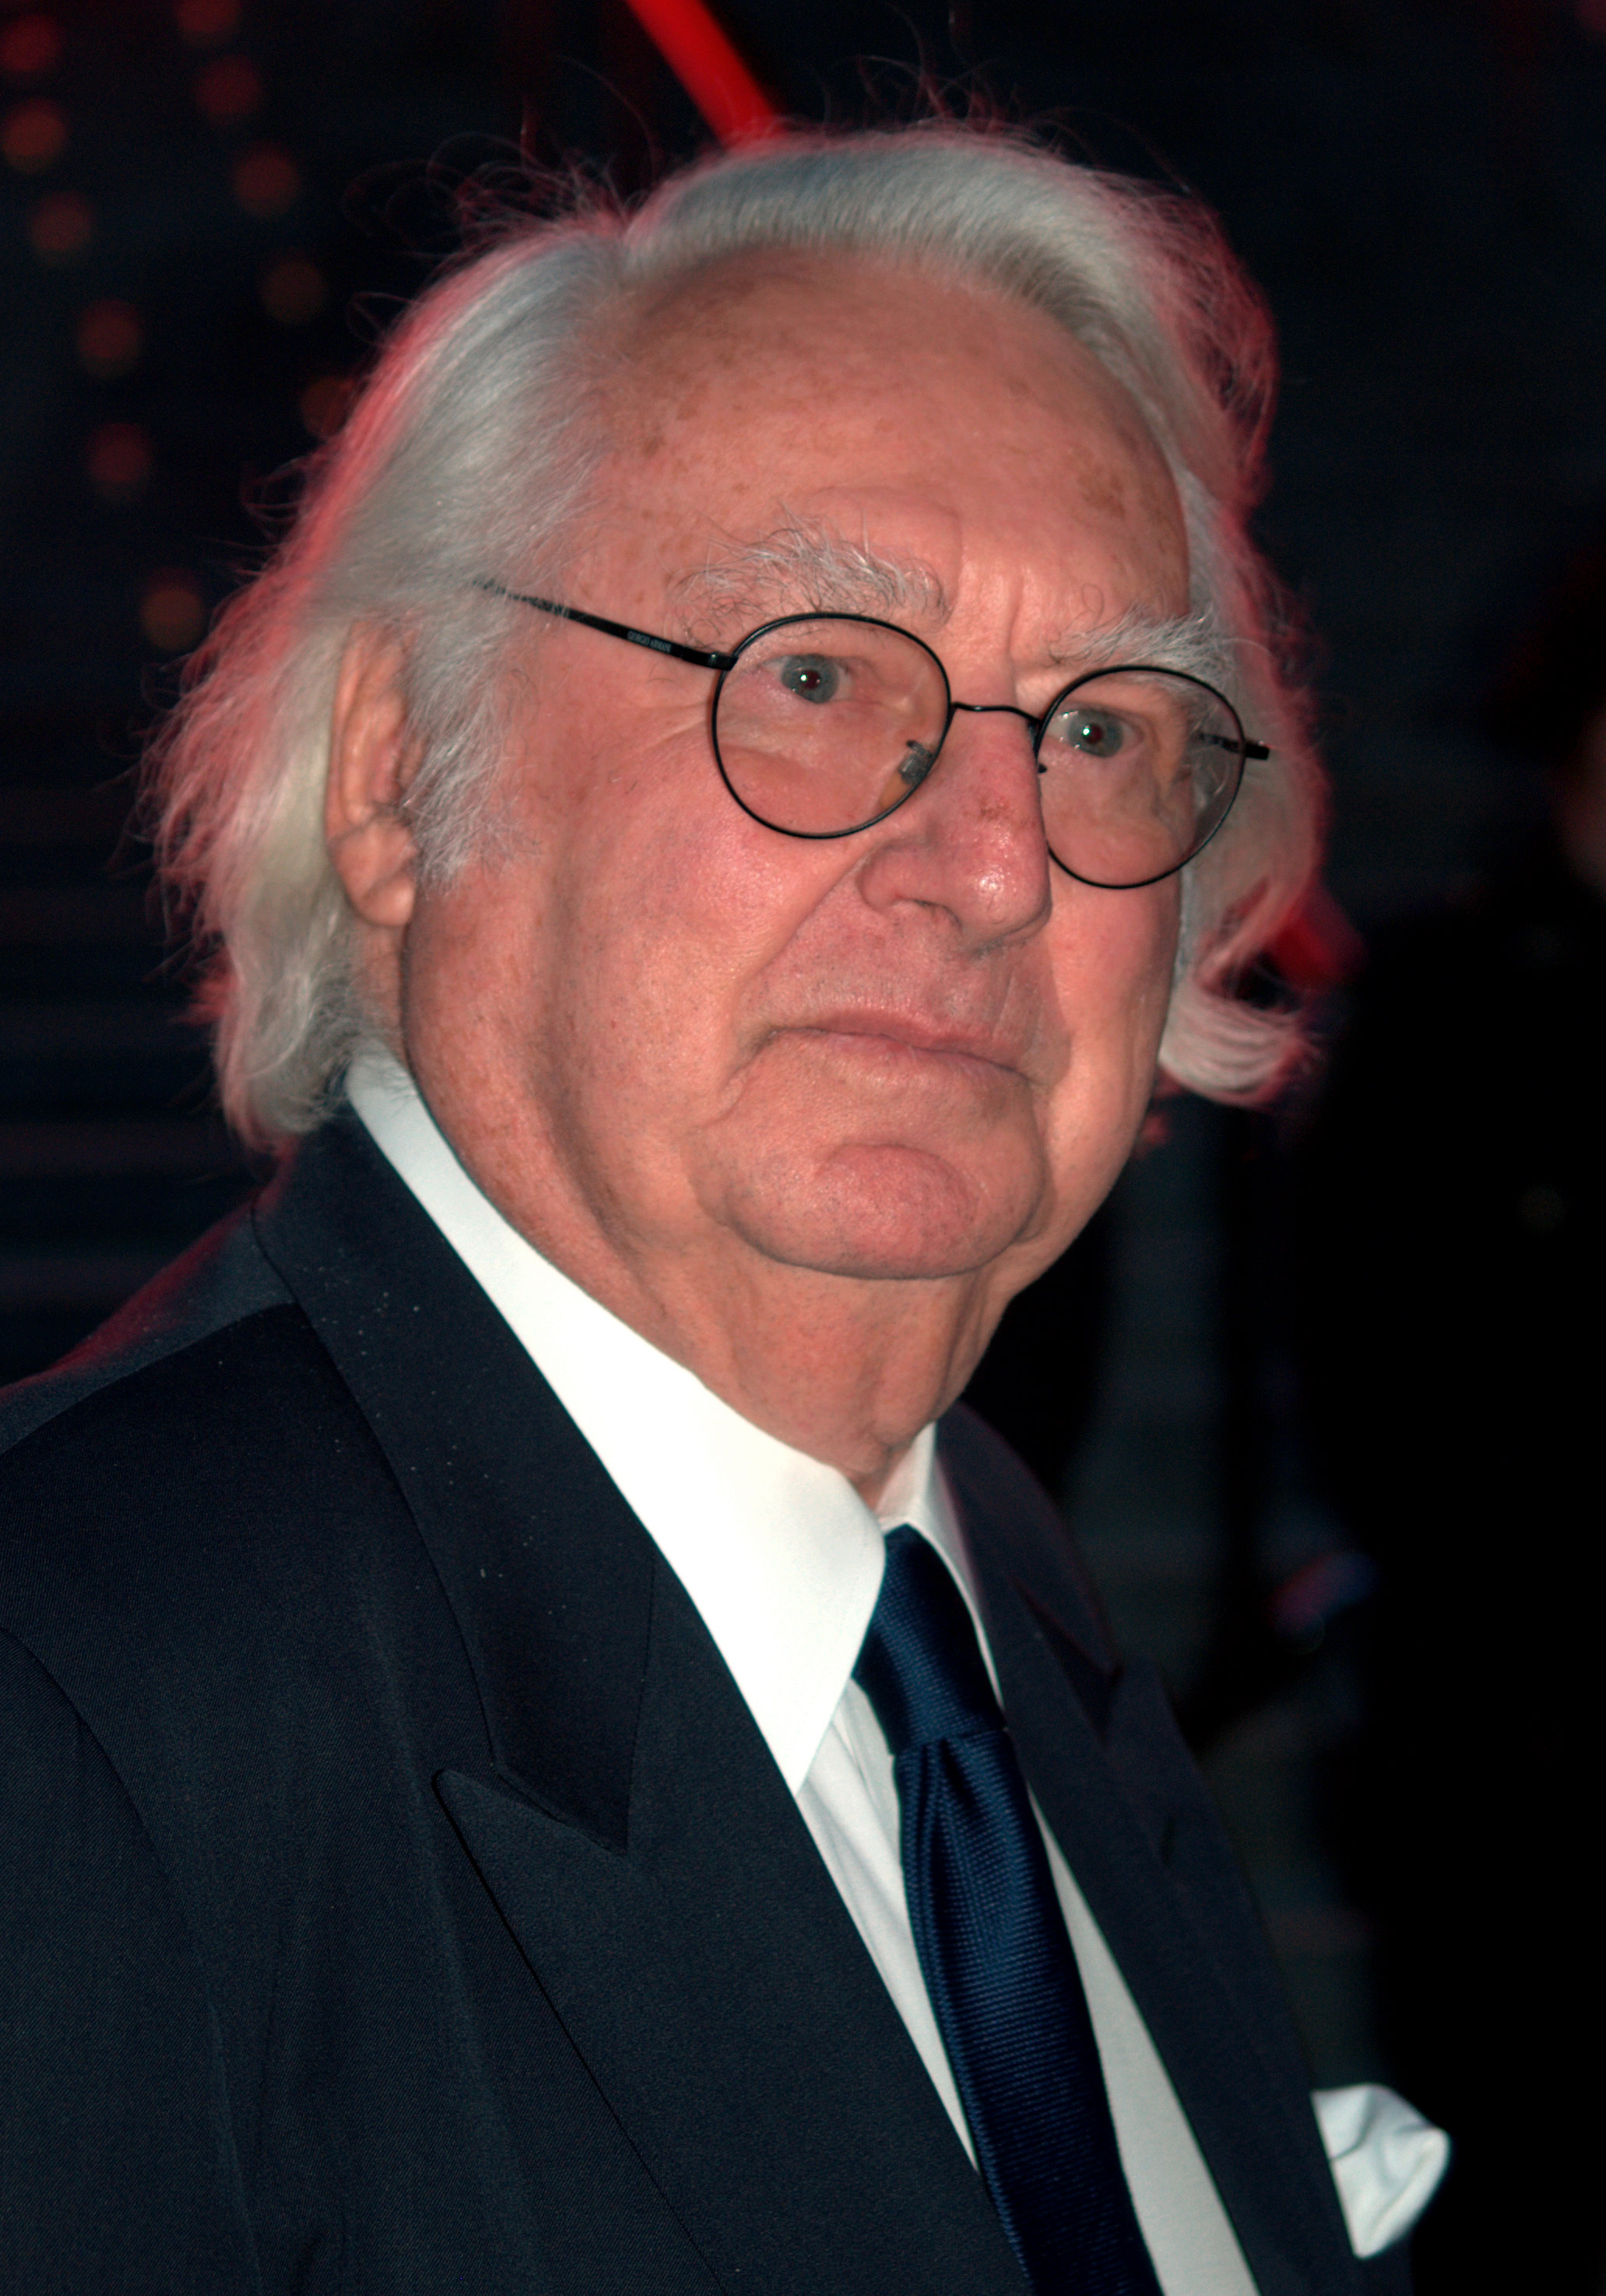 http://upload.wikimedia.org/wikipedia/commons/2/23/Richard_Meier_at_the_2009_Tribeca_Film_Festival.jpg